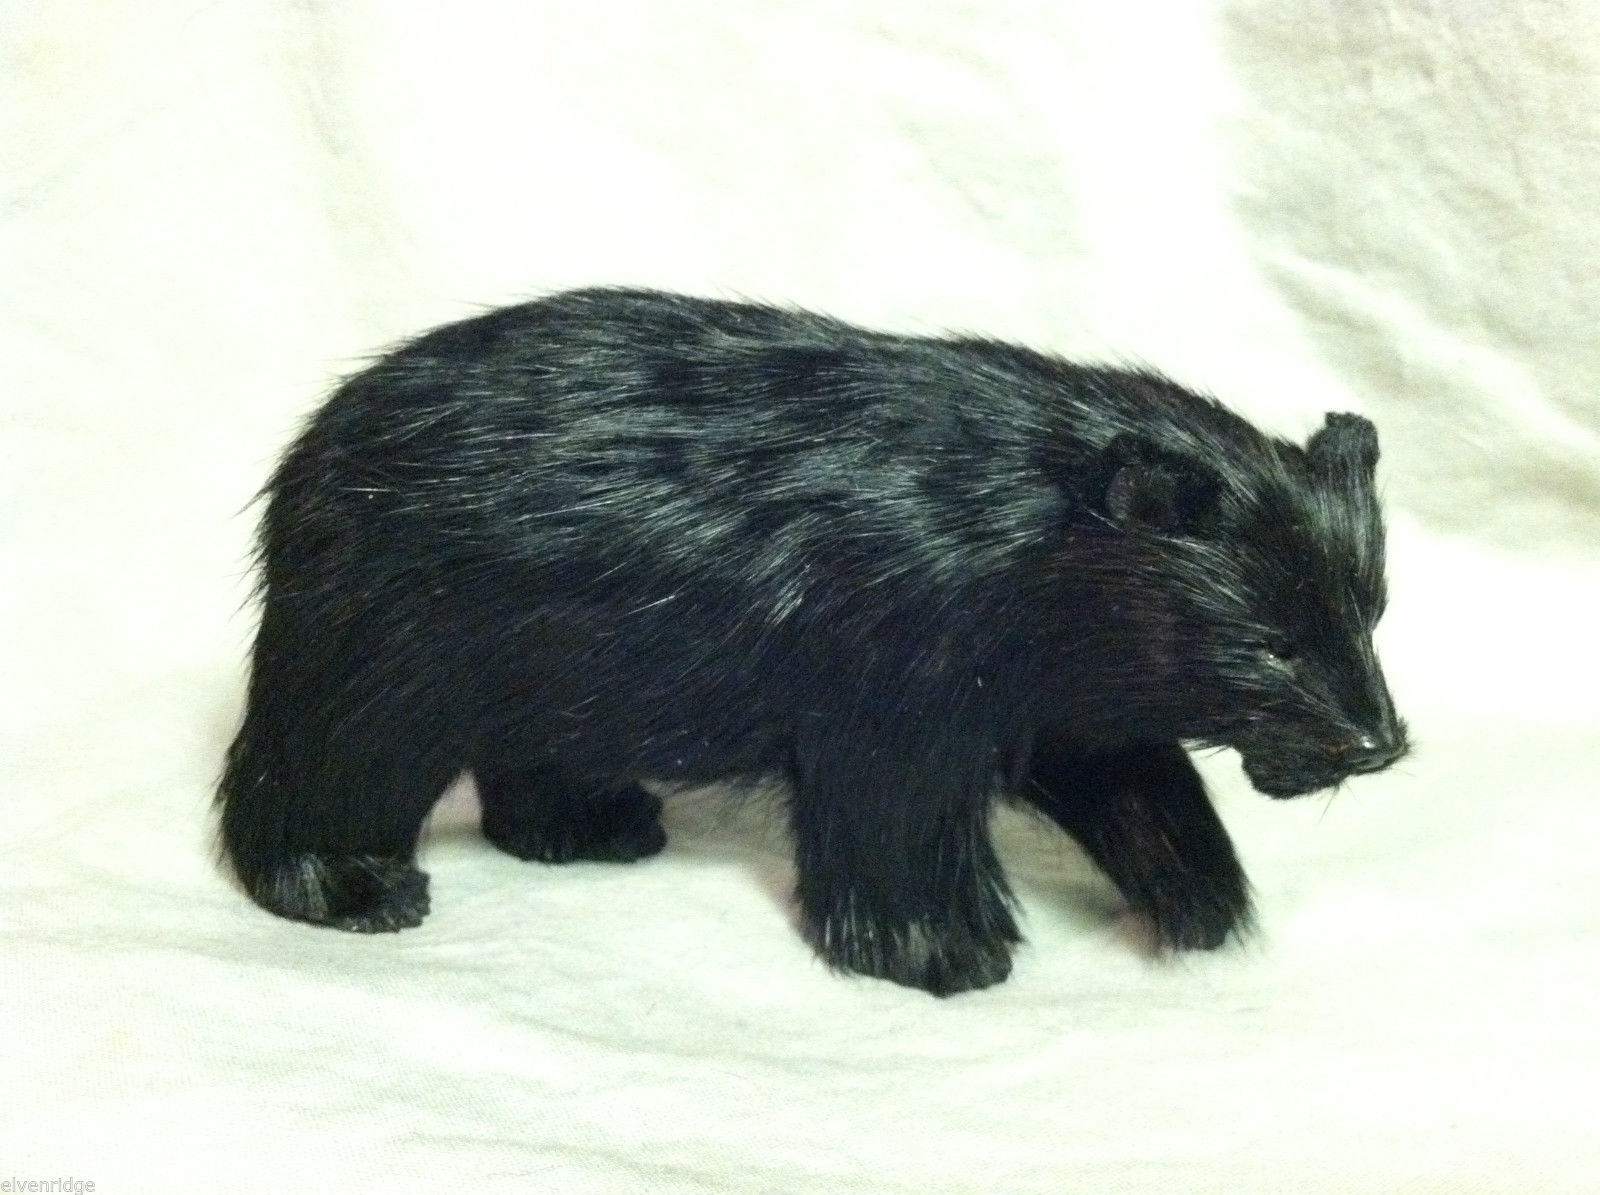 North American Black Bear Animal Figurine - recycled rabbit fur